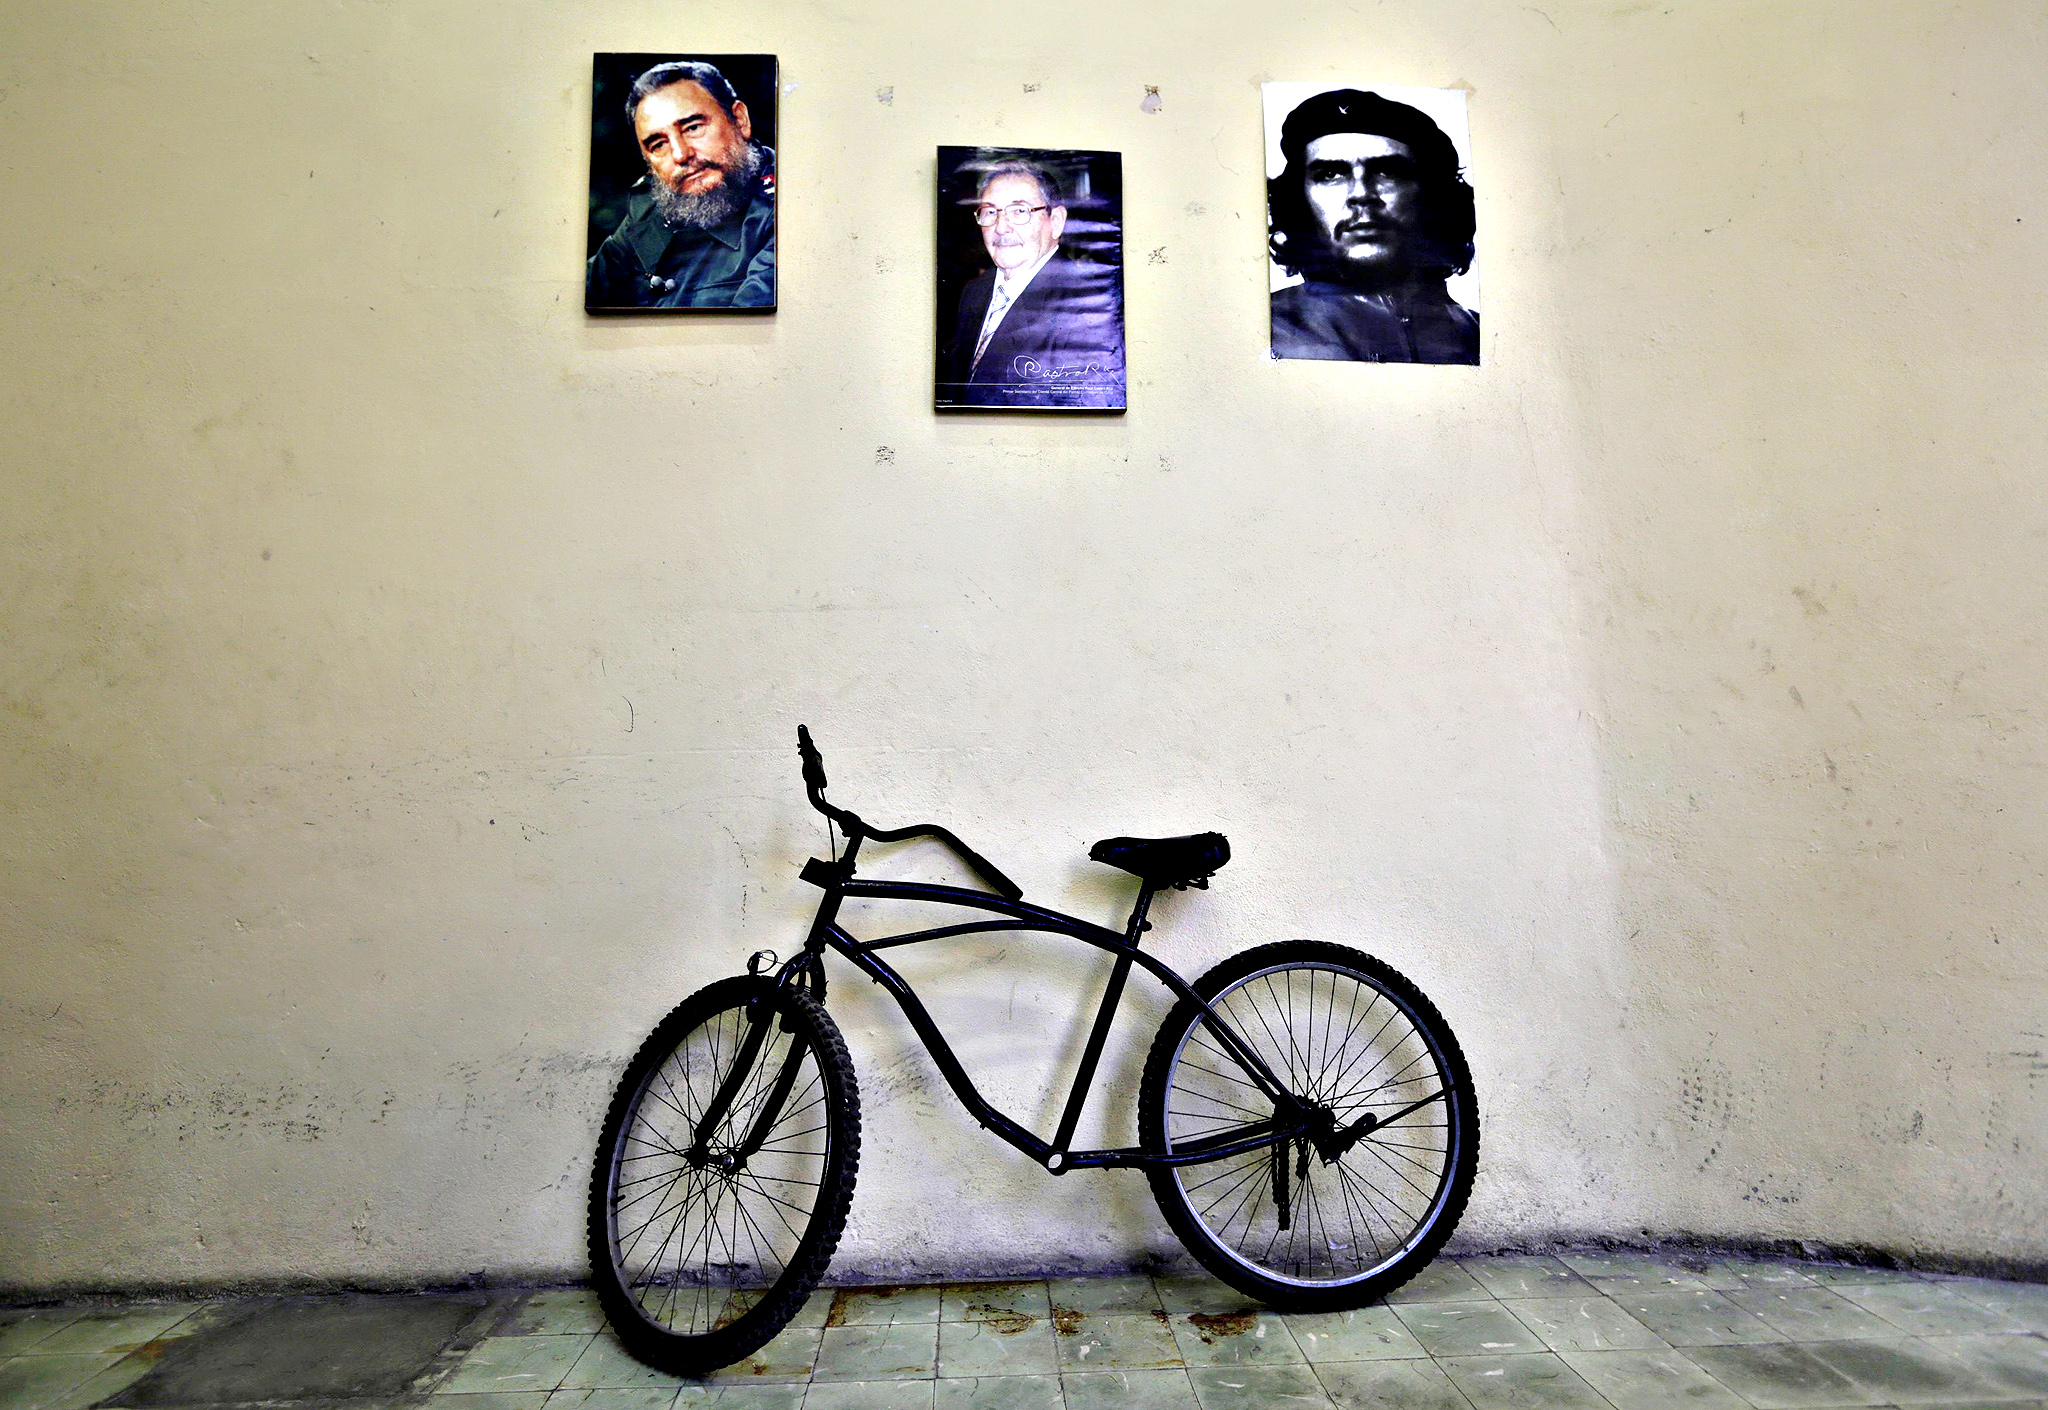 A bicycle is parked under pictures of Cuba's former president Fidel Castro, Raul Castro, brother of Fidel and Cuba's president, and revolutionary hero Ernesto 'Che' Guevara (L-R) in an office in Havana December 19, 2014. With Washington agreeing to restore full diplomatic ties that were cut in the early 1960s, Cuba's communist government may not be able to blame its old Cold War nemesis so readily. Cuba has repeatedly sought to dispel the idea that it secretly wanted the embargo in place, saying if the Americans believed that they should challenge Cuba by lifting it.